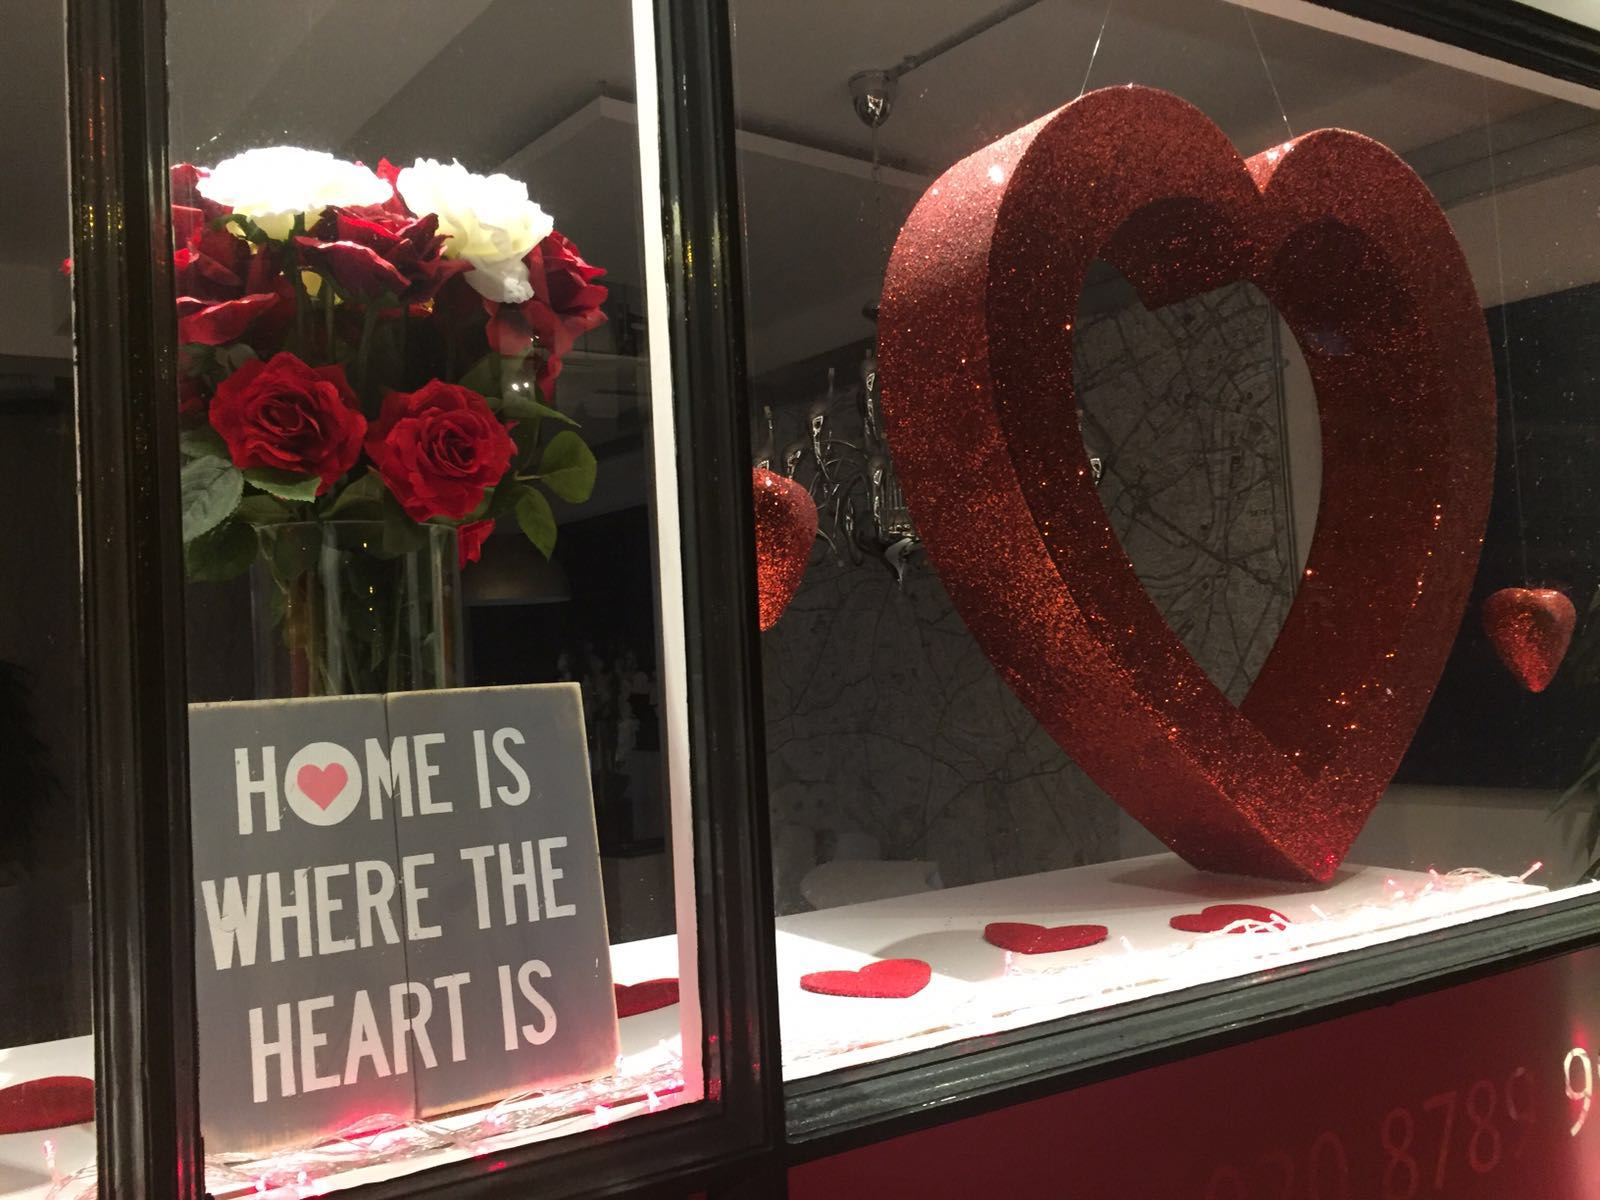 Do you know where your heart is? Because where your heart is, there is your home. Also, don't forget to add roses. That's what this window display is saying through Valentine's day decoration.